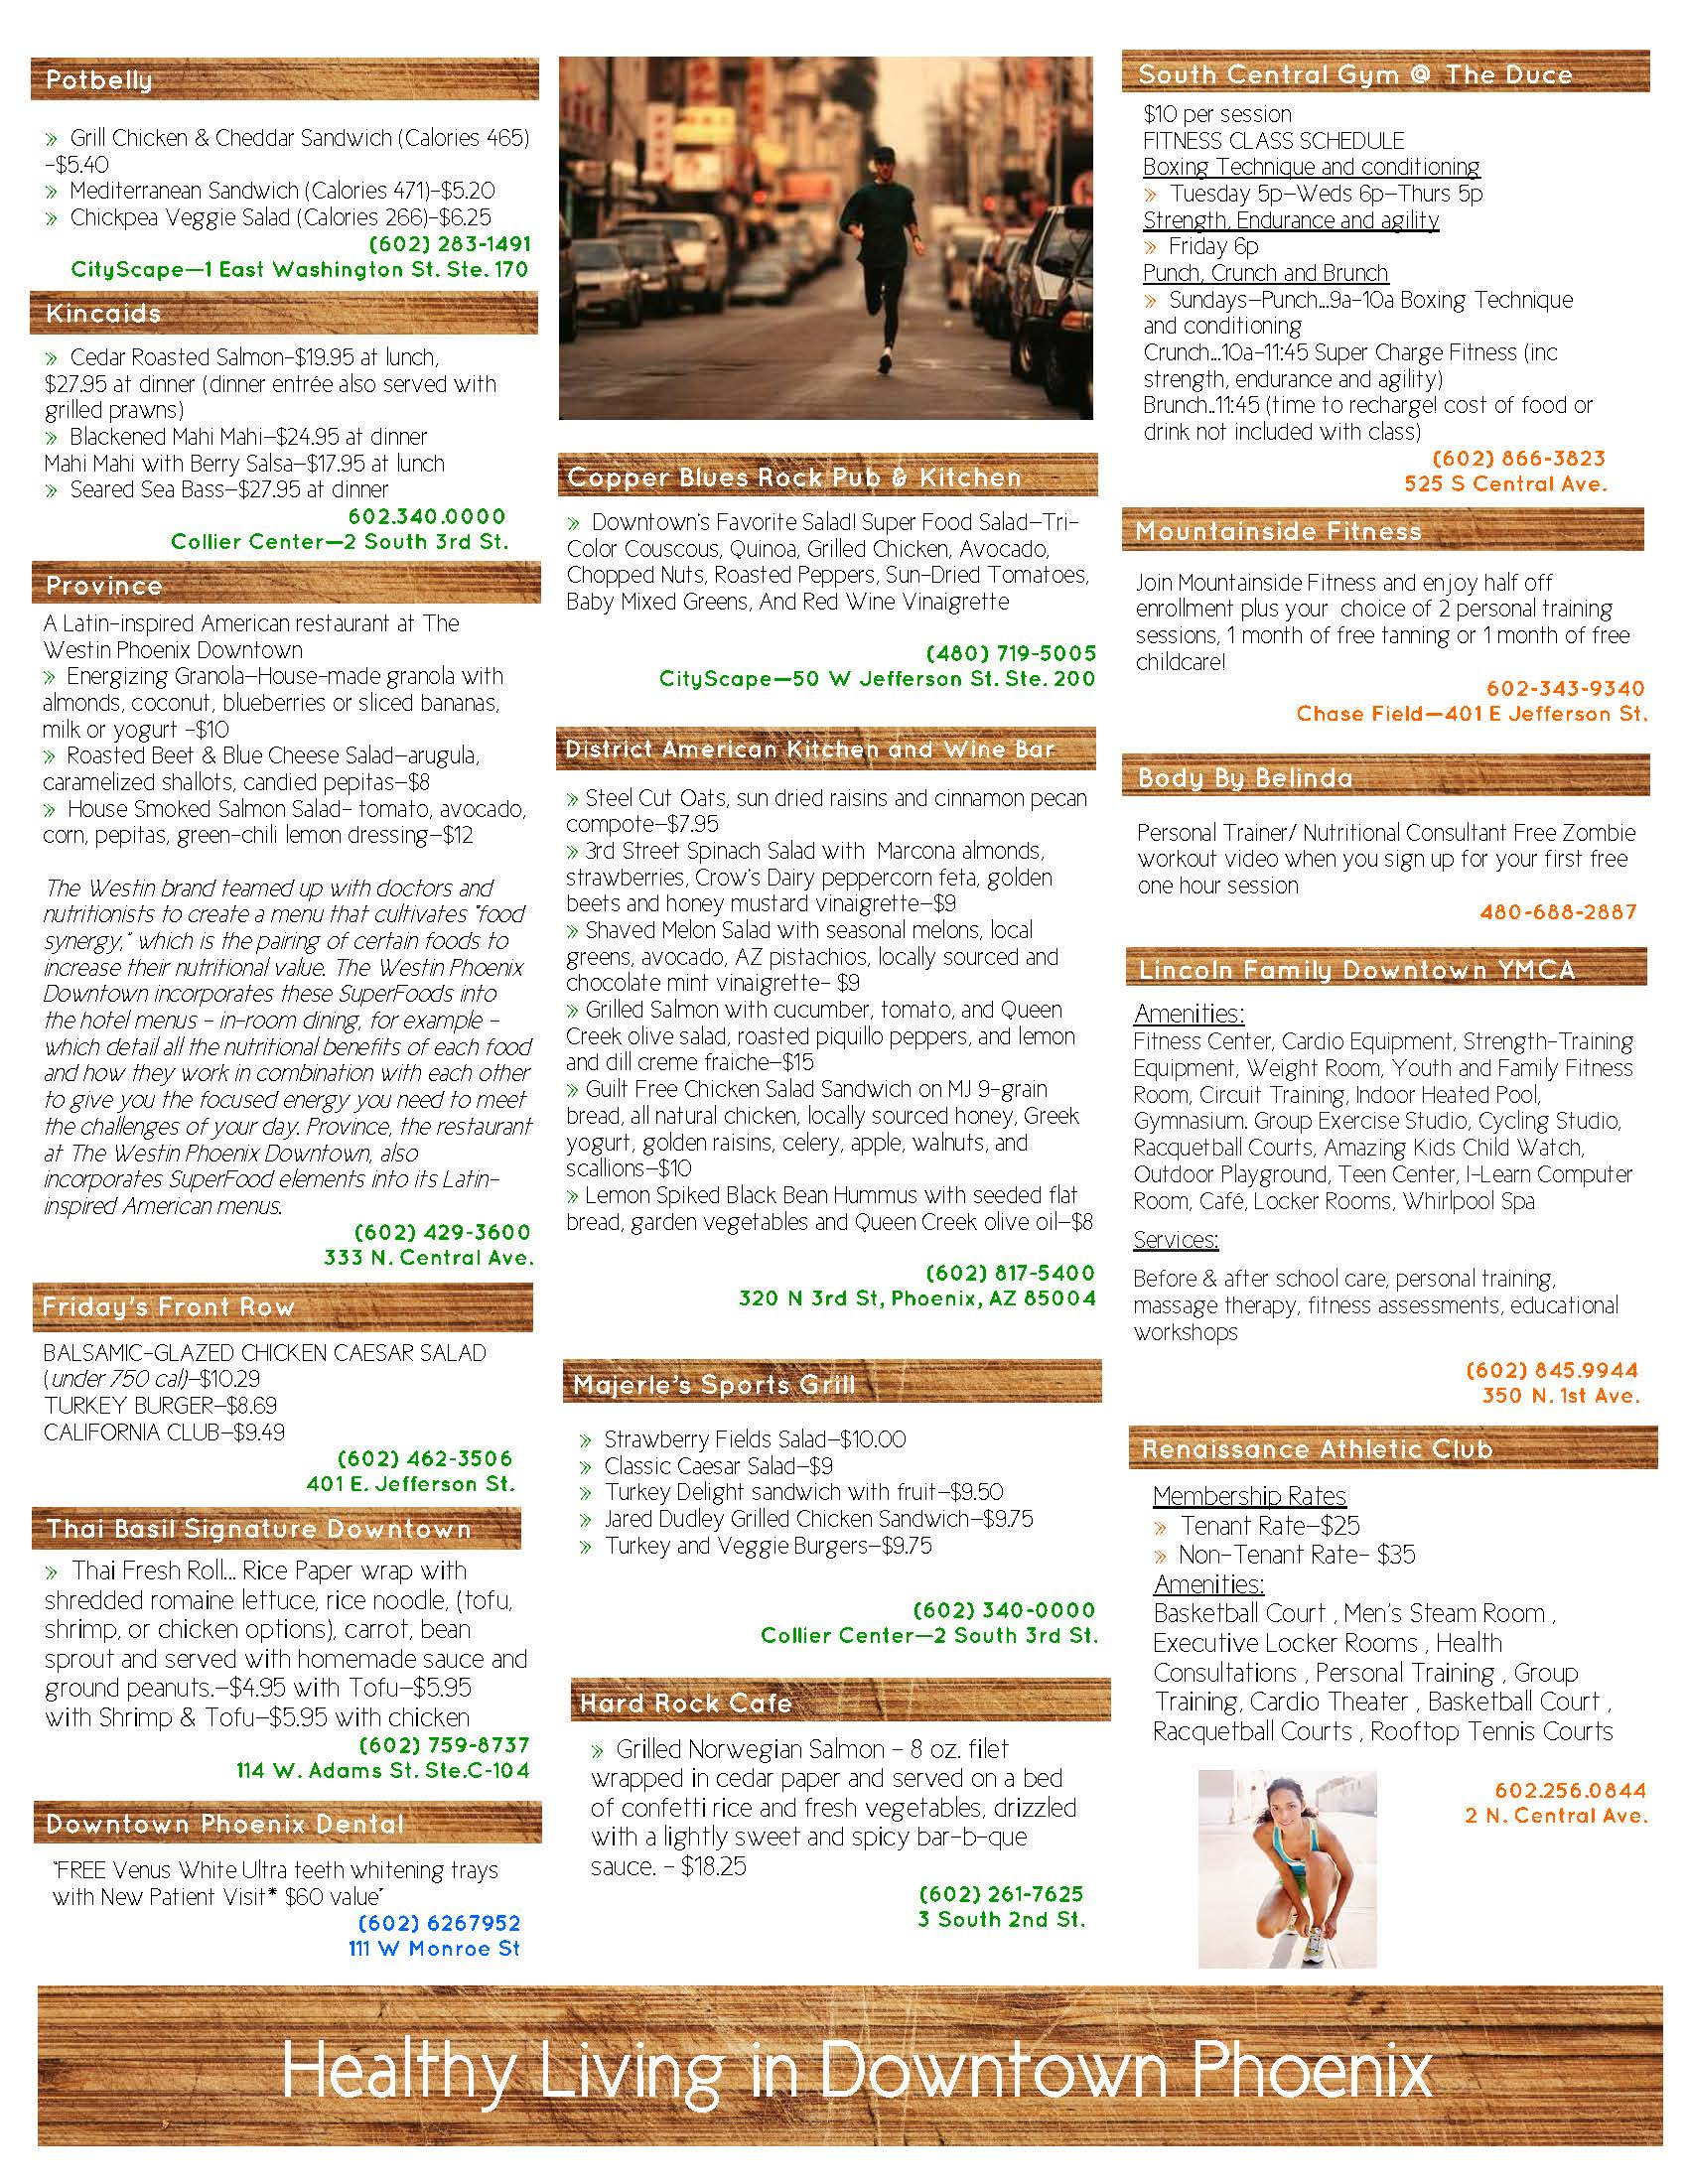 Healthy Lifestyle in Downtown Phoenix Listing FINAL 10182013_Page_2